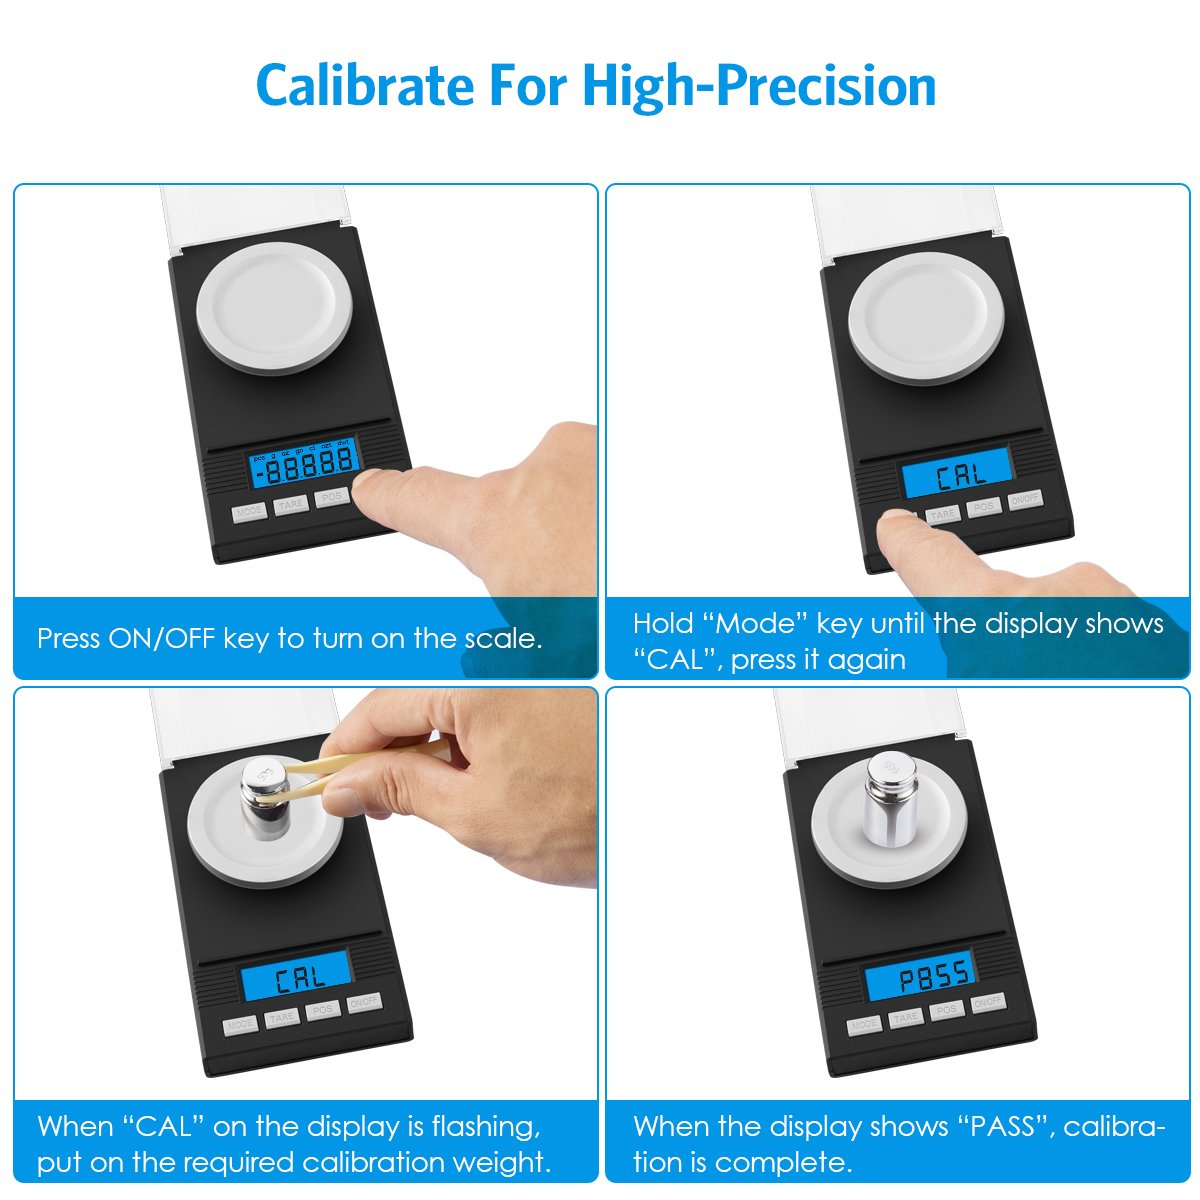 AMIR Digital Milligram Scale, Mini Precise Jewelry Scale, 50g/ 0.001g Pro Lab Scale with Calibration Weights Tweezers and Weighing Pans, 6 Units, Tare & PCS Function, Auto Off, for Gems, Diamond, etc by AMIR (Image #5)